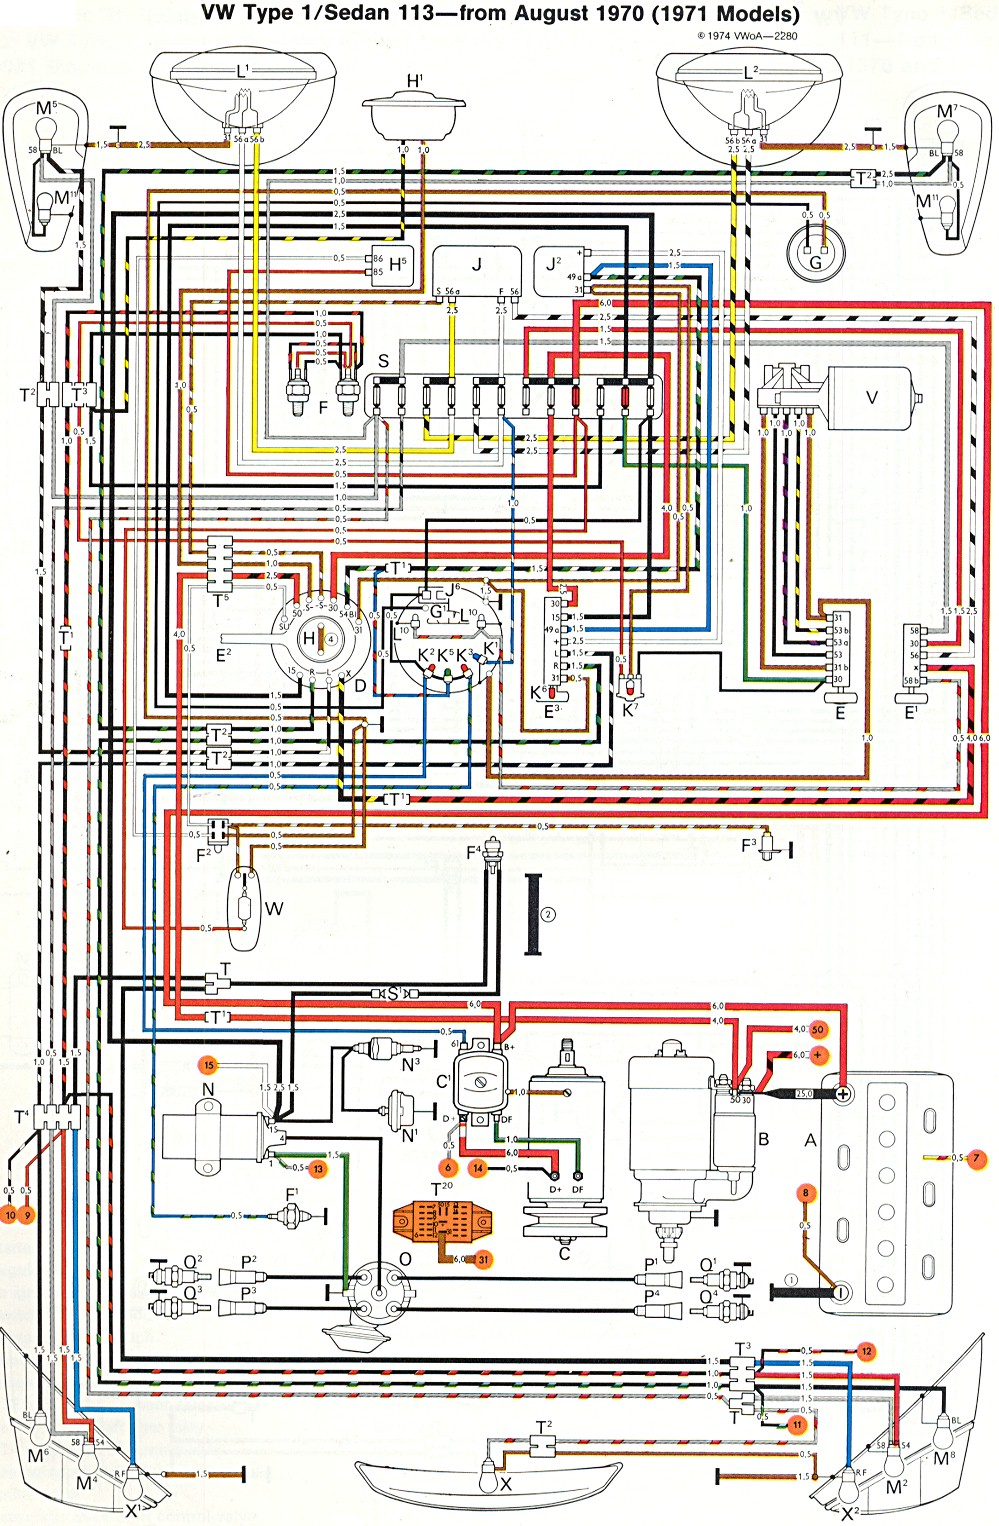 bug_super_71 2001 vw beetle wiring diagram 1964 vw beetle wiring diagram 2002 vw beetle wiring diagram at fashall.co